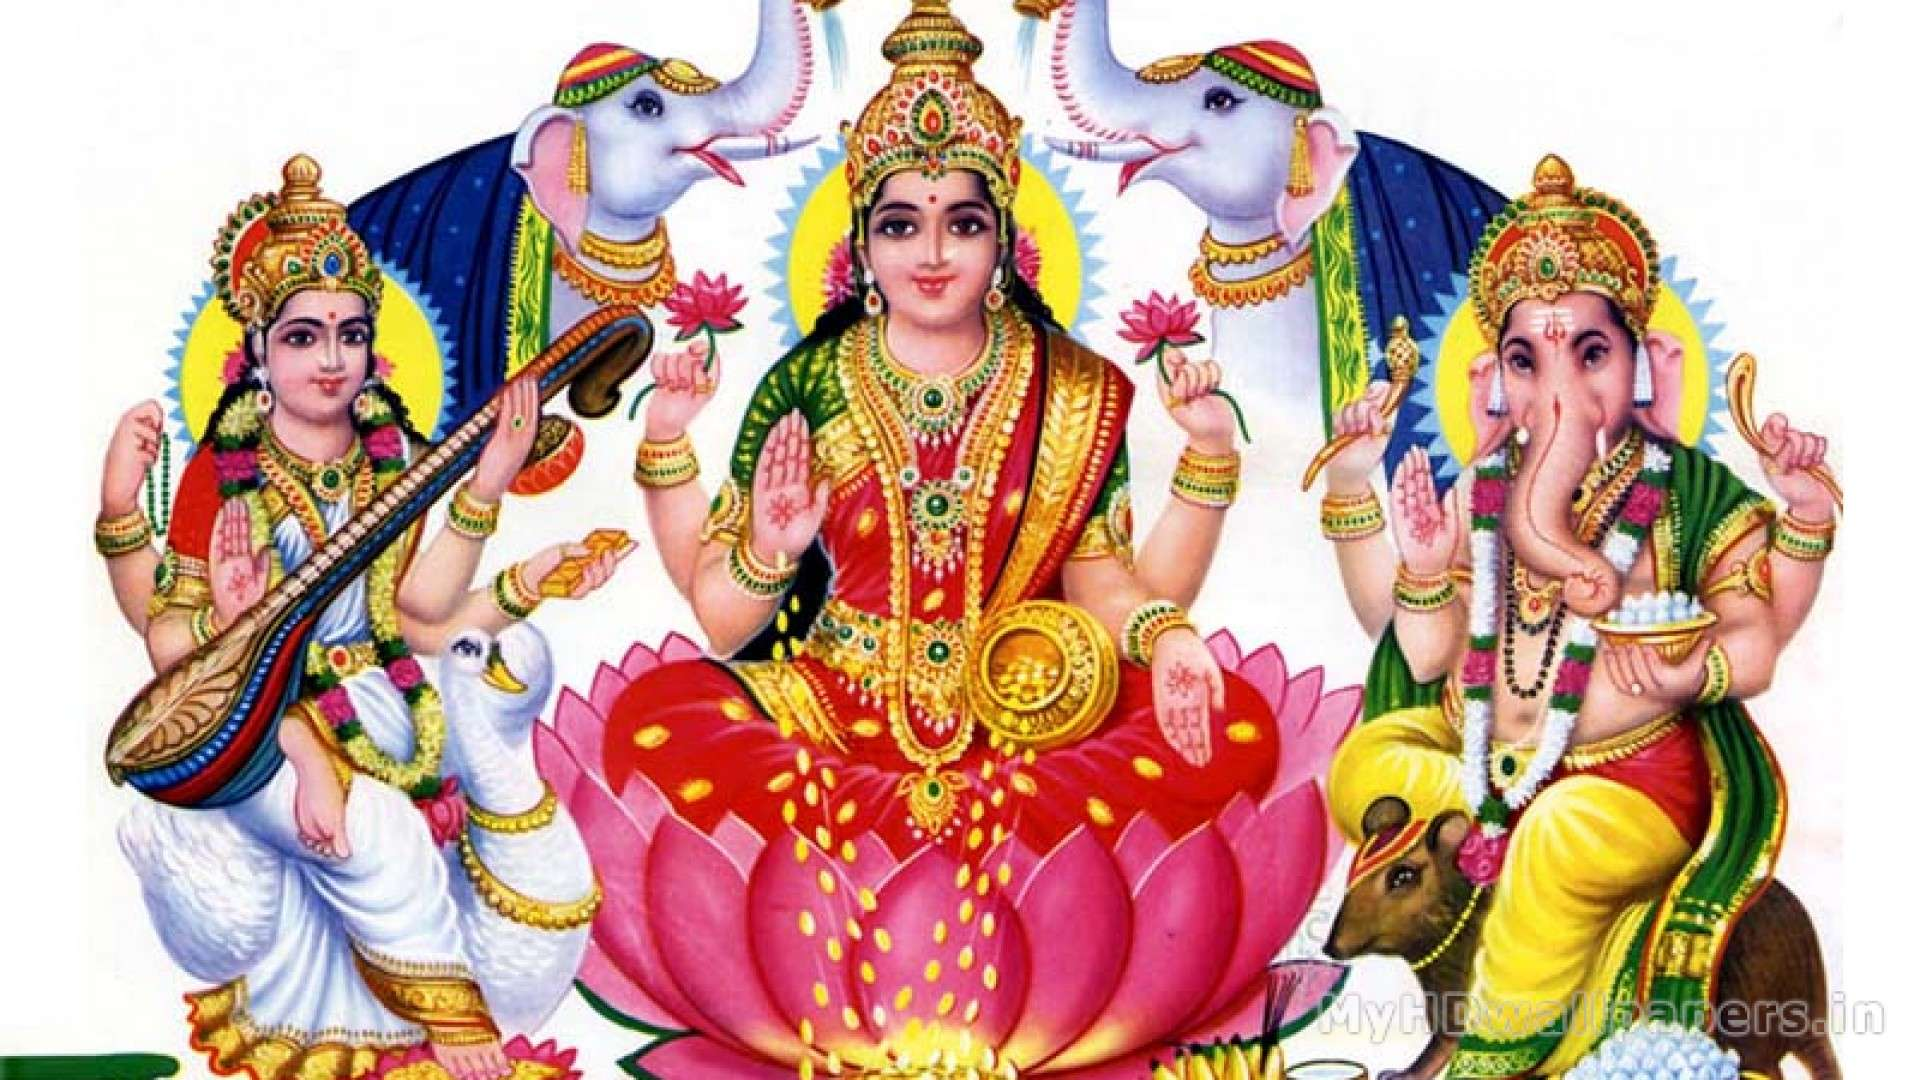 God Laxmi 3d Wallpaper Maa Laxmi Desktop Wallpaper Hd Wallpapers